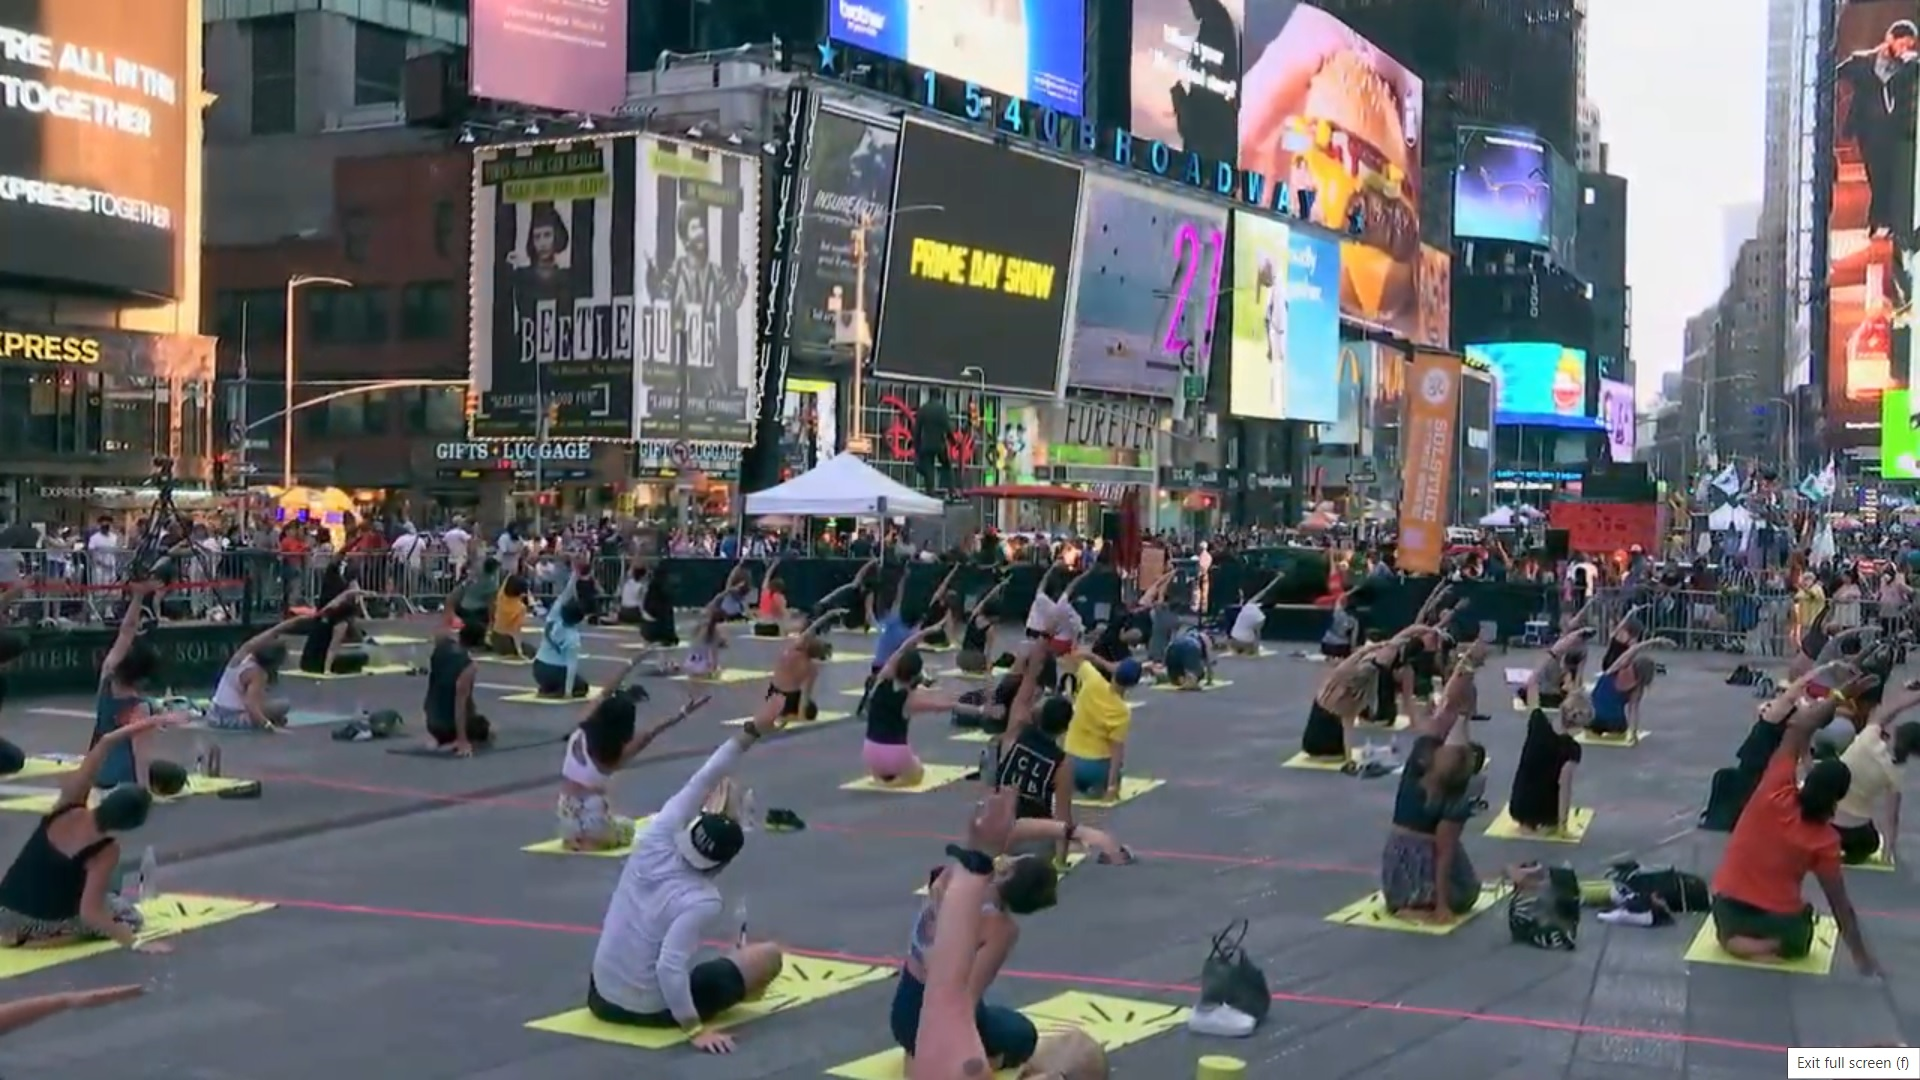 International Yoga Day at Times Square, New York